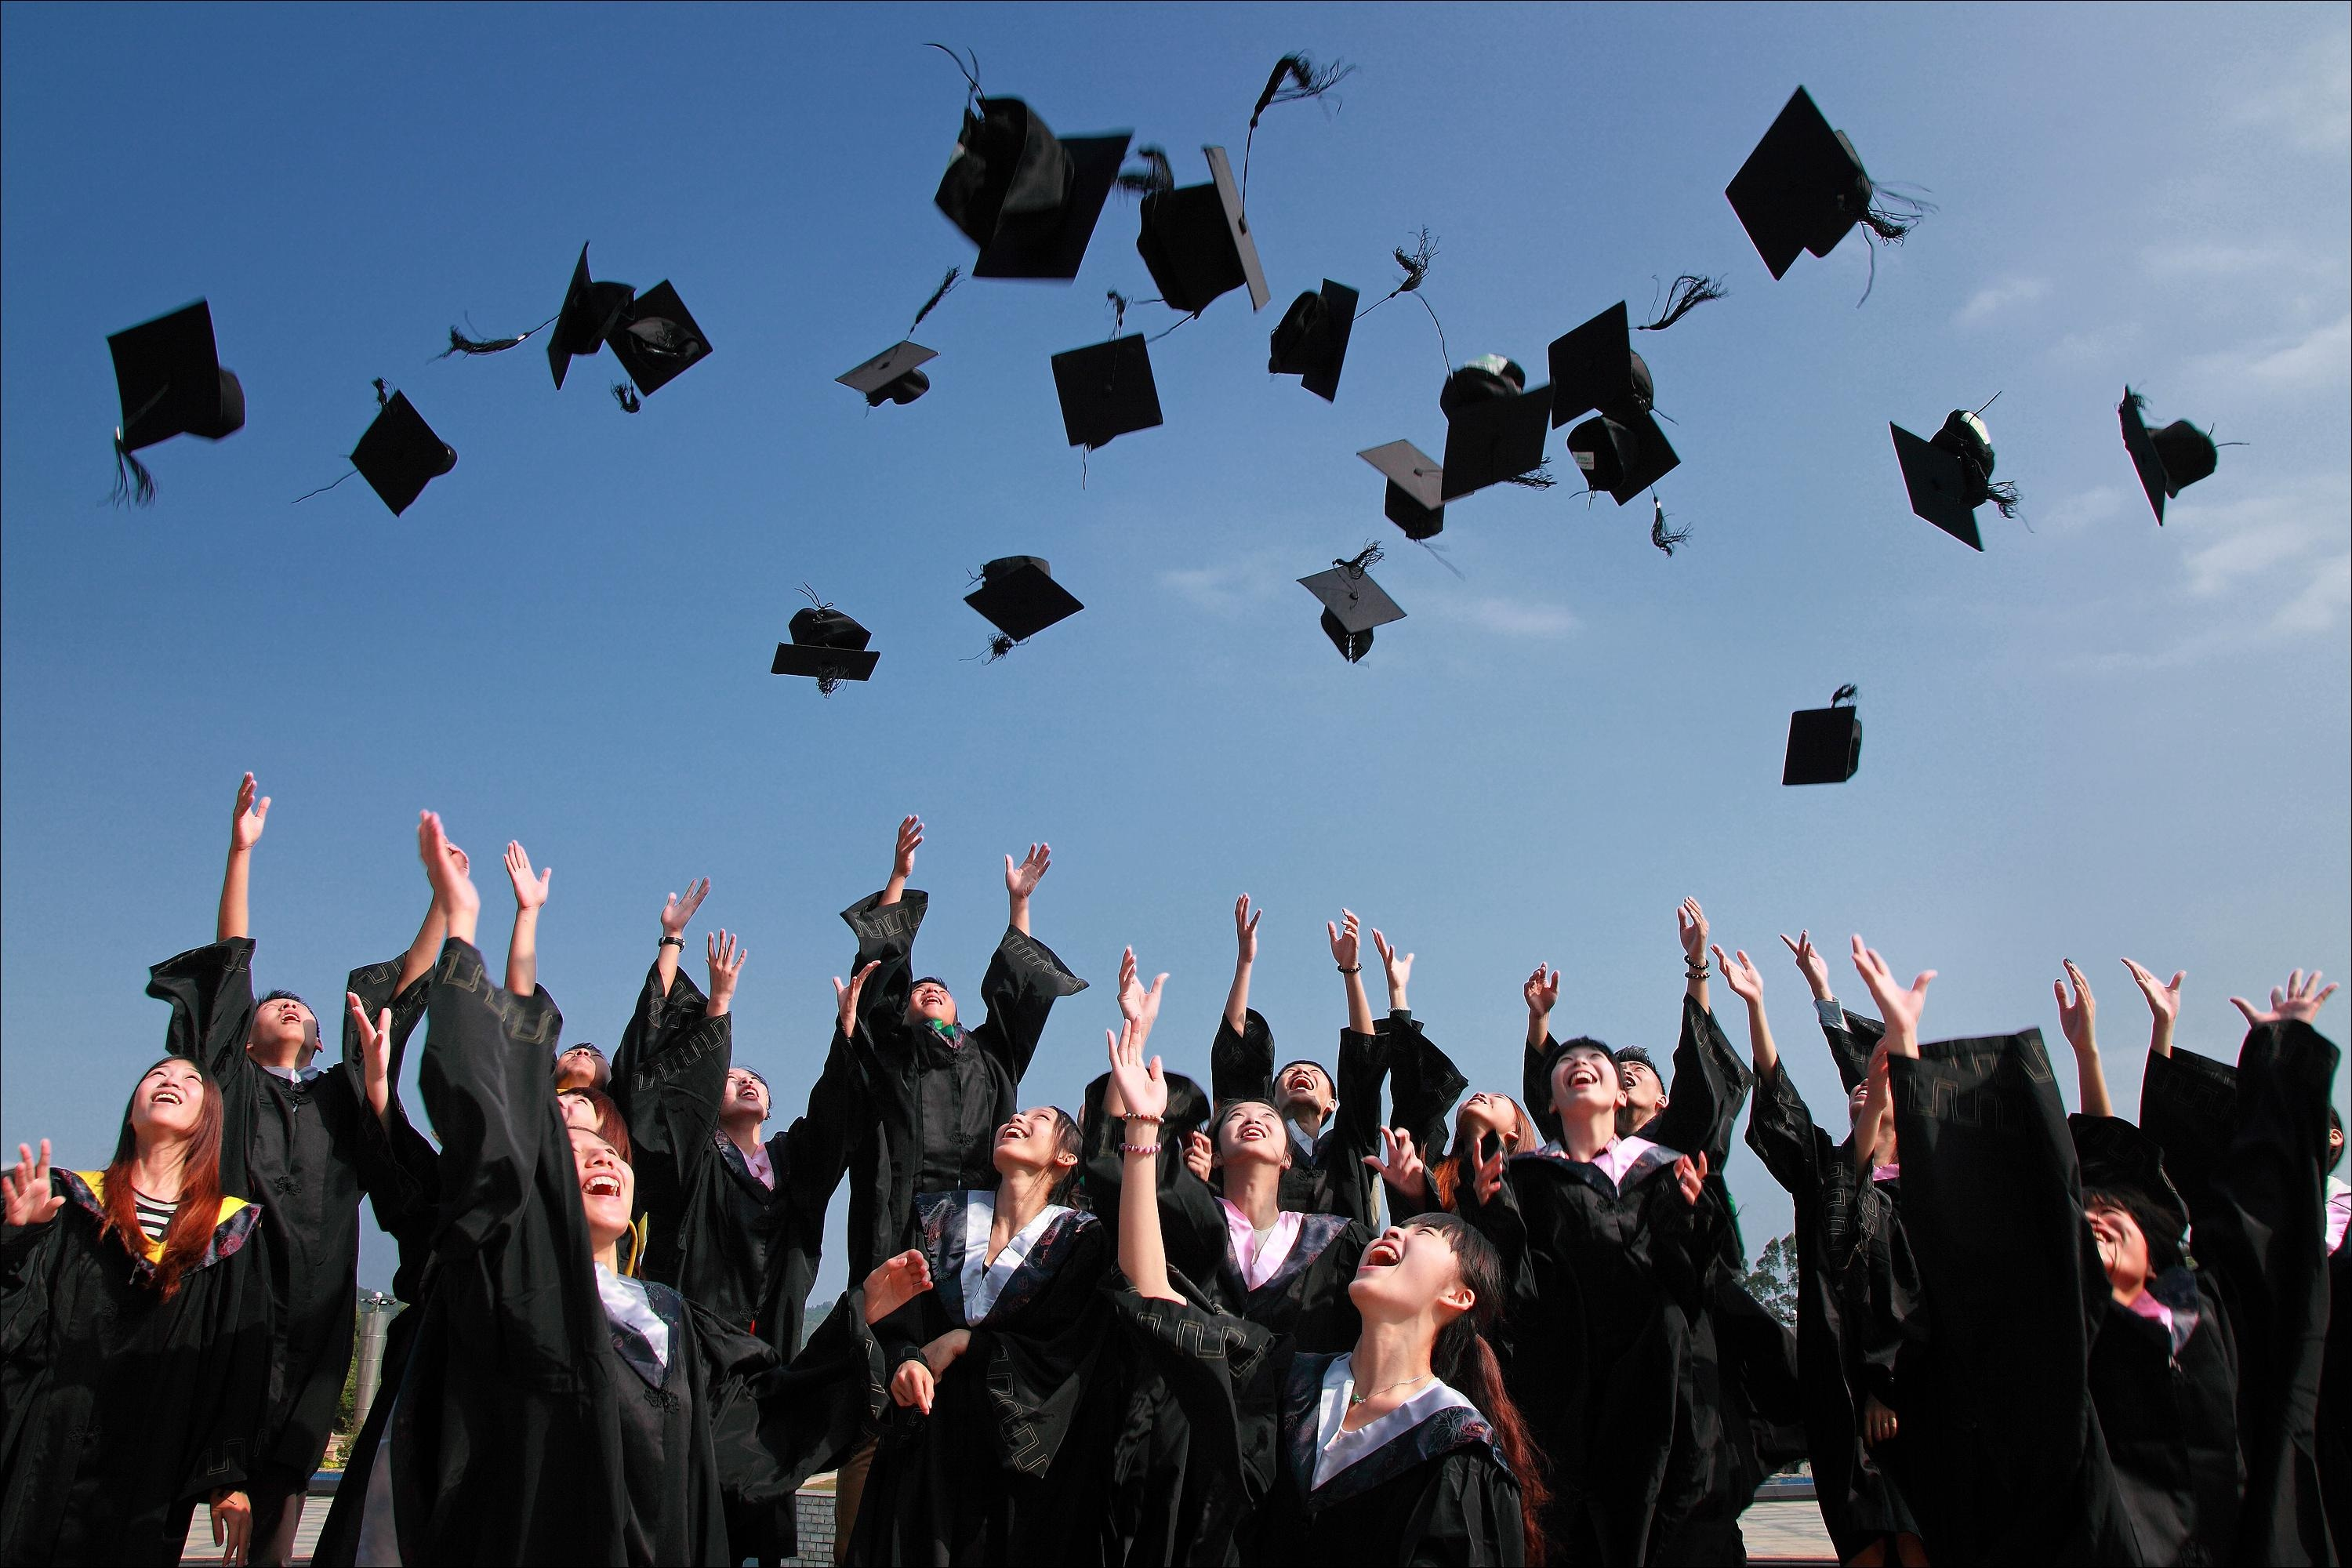 Graduates throwing their mortarboards in the air